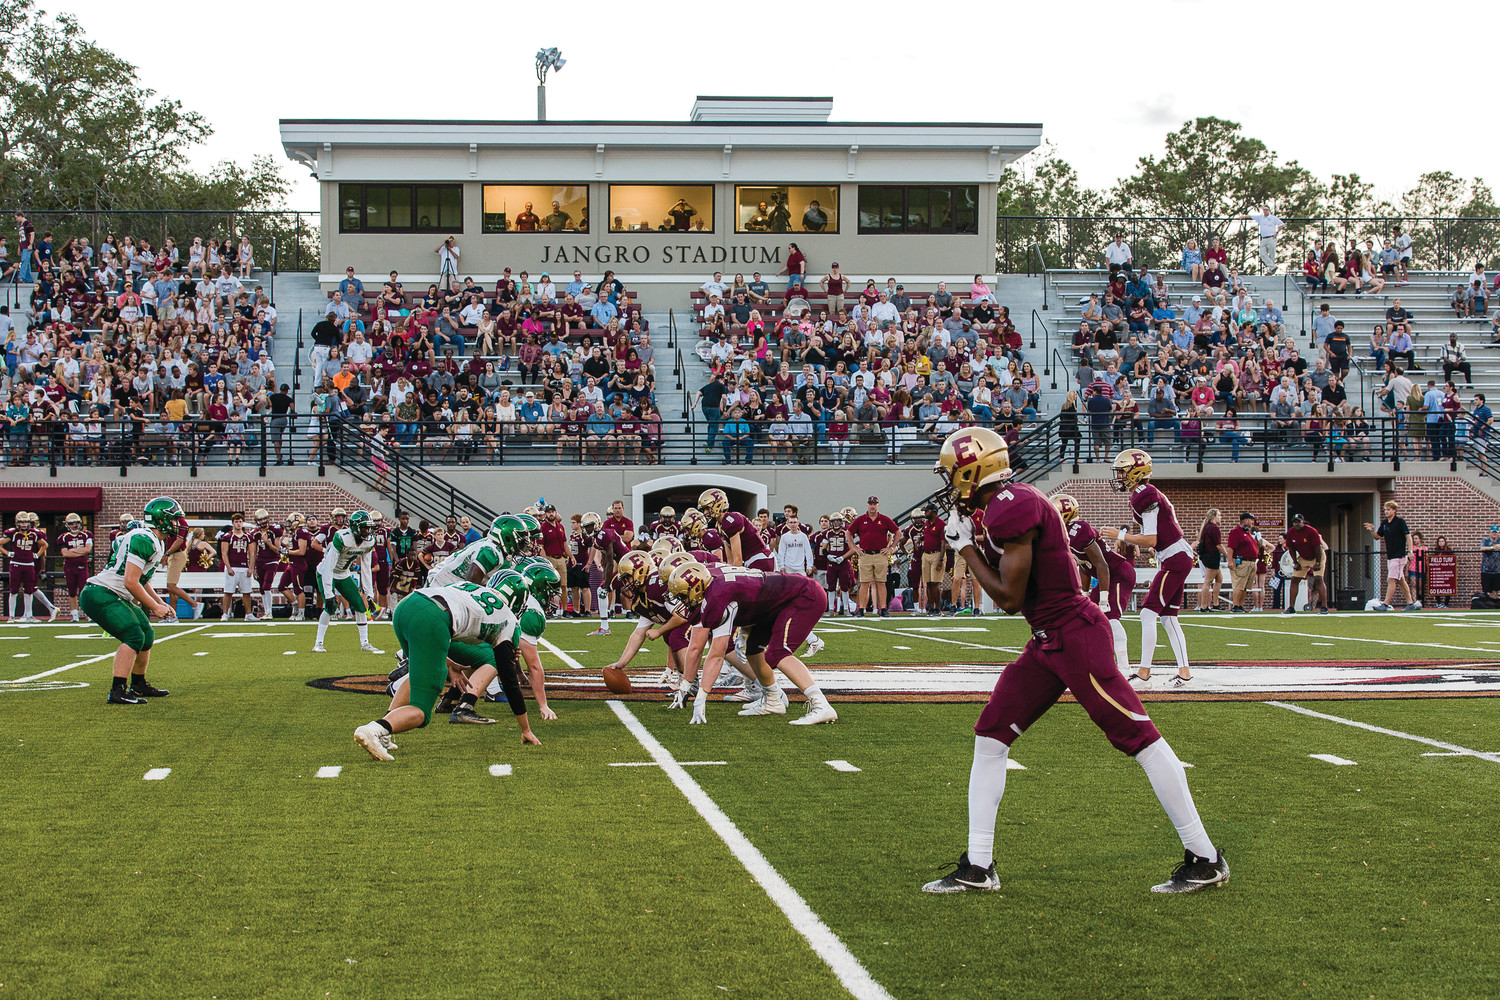 Episcopal takes on Eagle's View in its home opener on Sept. 22 at the newly renovated Jangro Stadium, which was dedicated to the Ponte Vedra Beach family during halftime of the game.